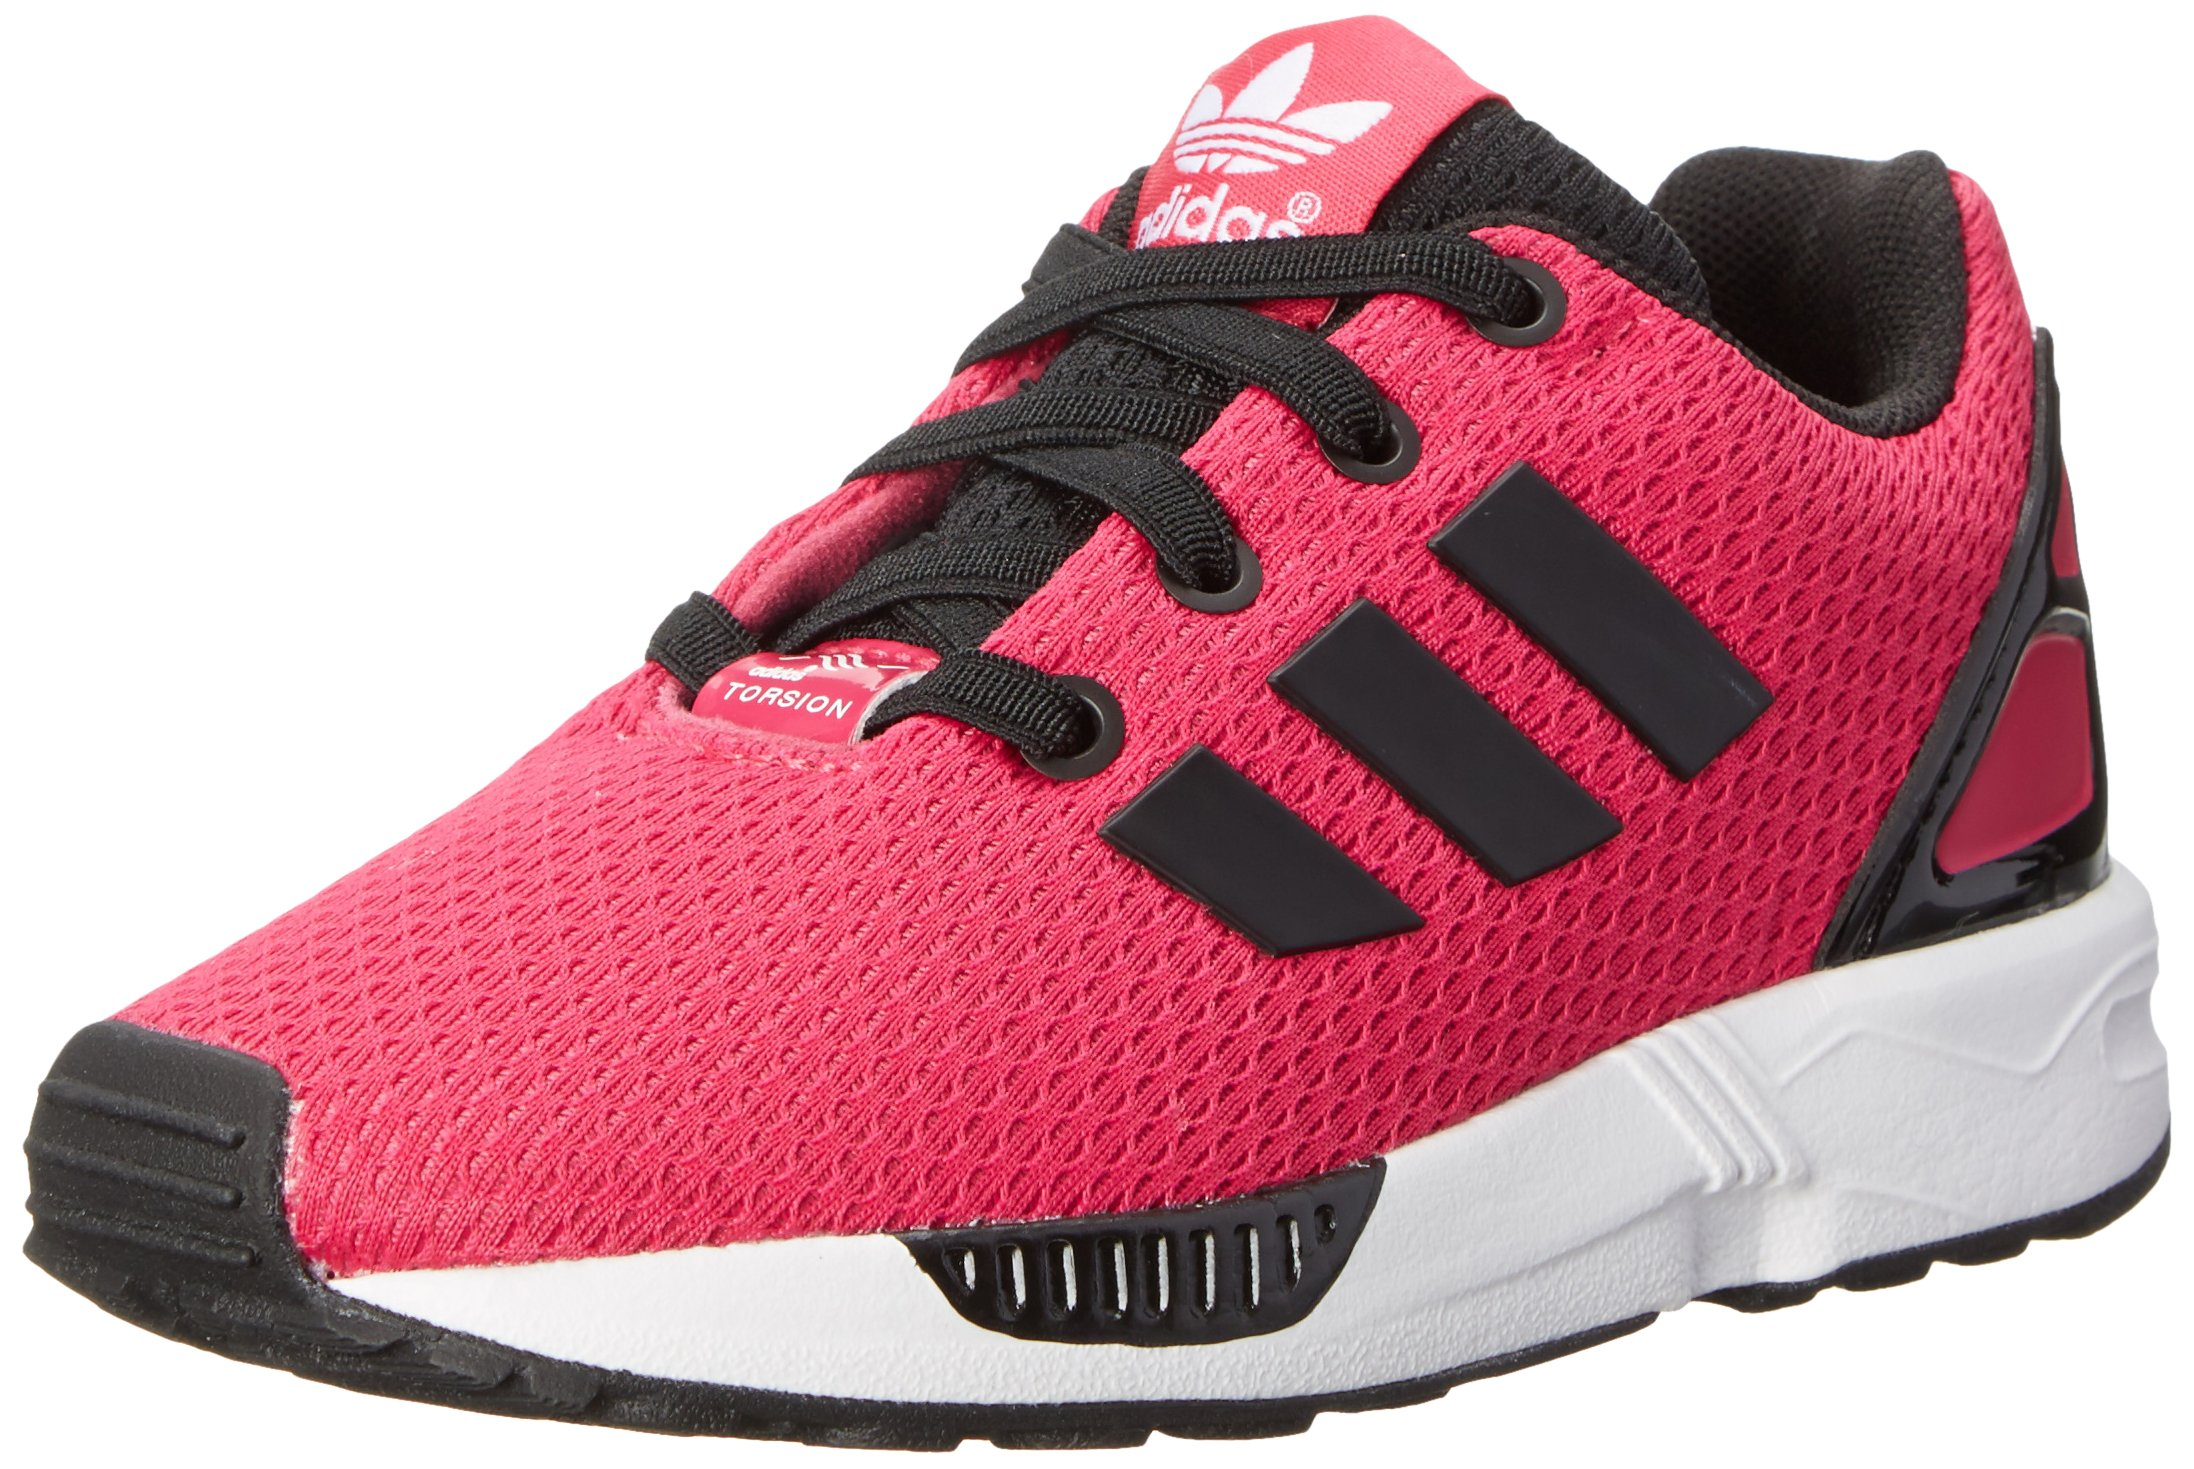 premium selection 156f6 ccc31 Galleon - Adidas Originals ZX Flux EL I Running Shoe (Toddler), Bold  PinkBlackWhite, 8 M US Toddler